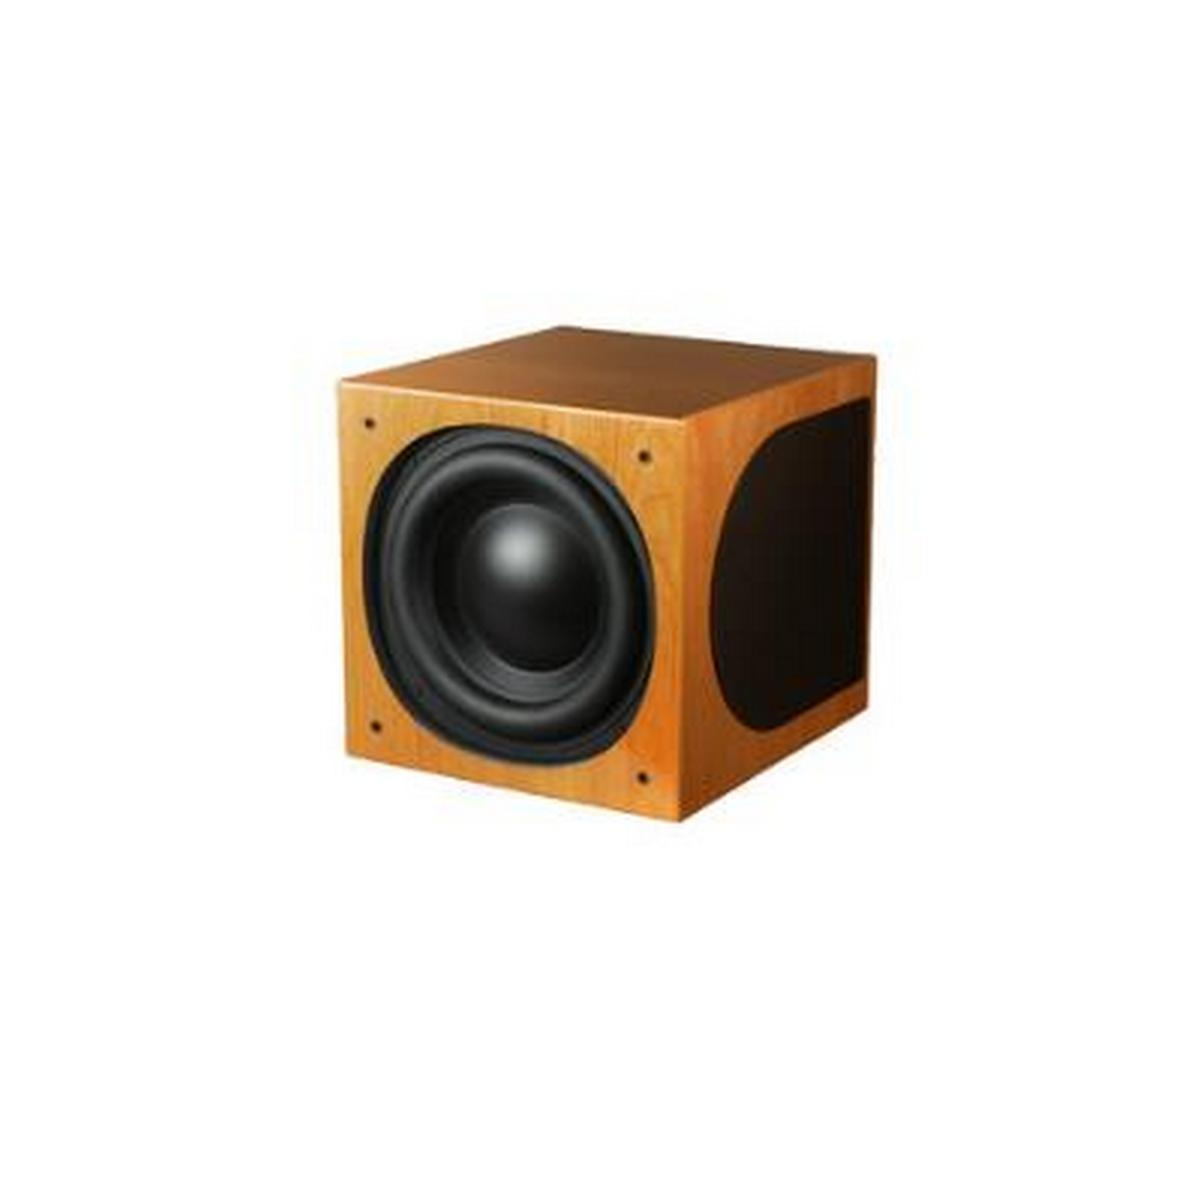 PhaseTech DFS-112SUB-__ Extra powered compact subwoofer (12